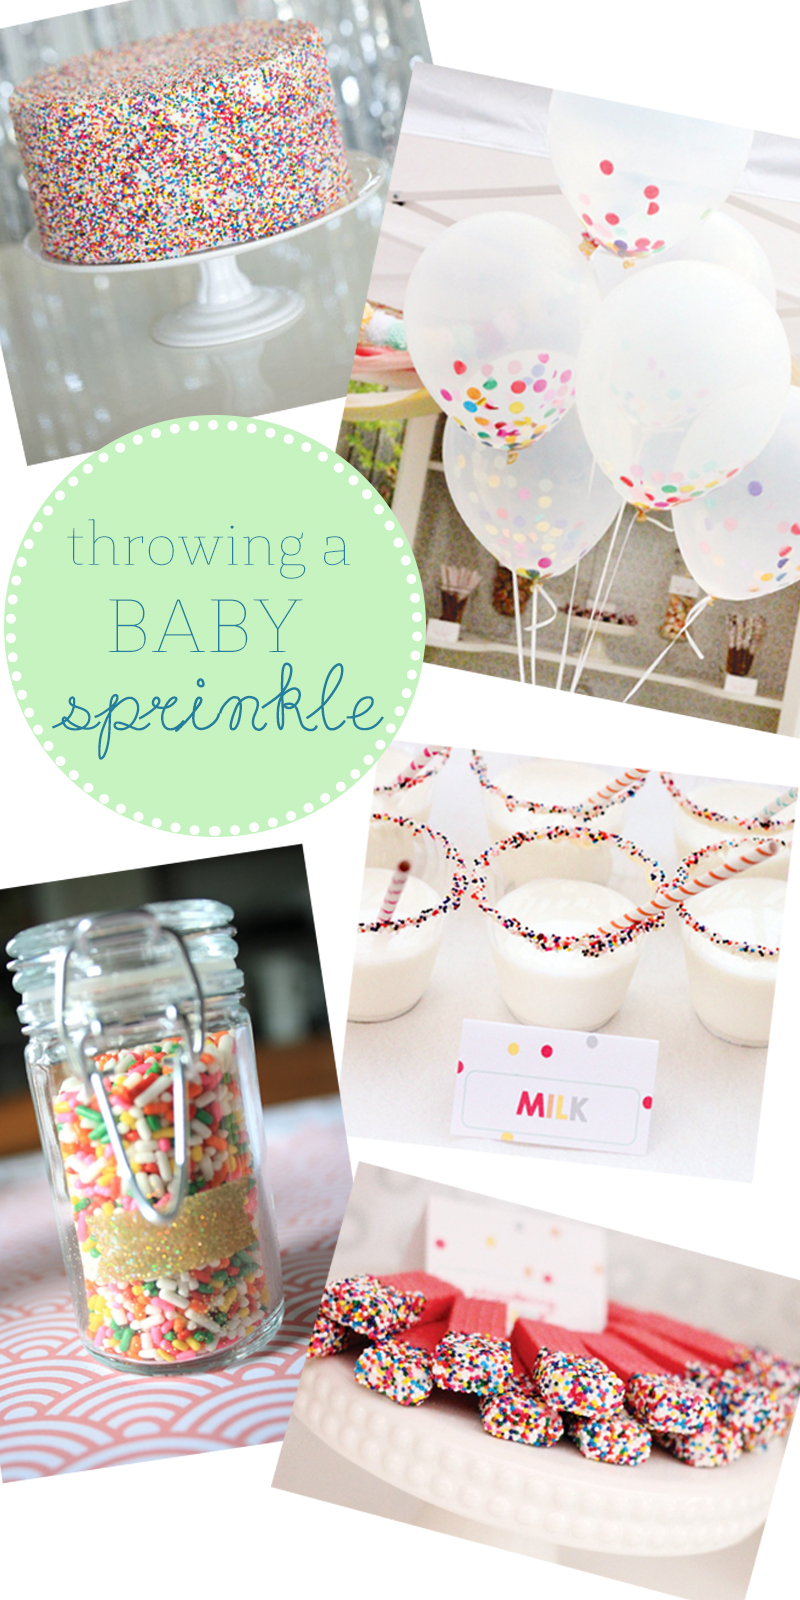 Wondering How To Plan Your Baby Sprinkle Here Are Several Ideas That Celebrate The